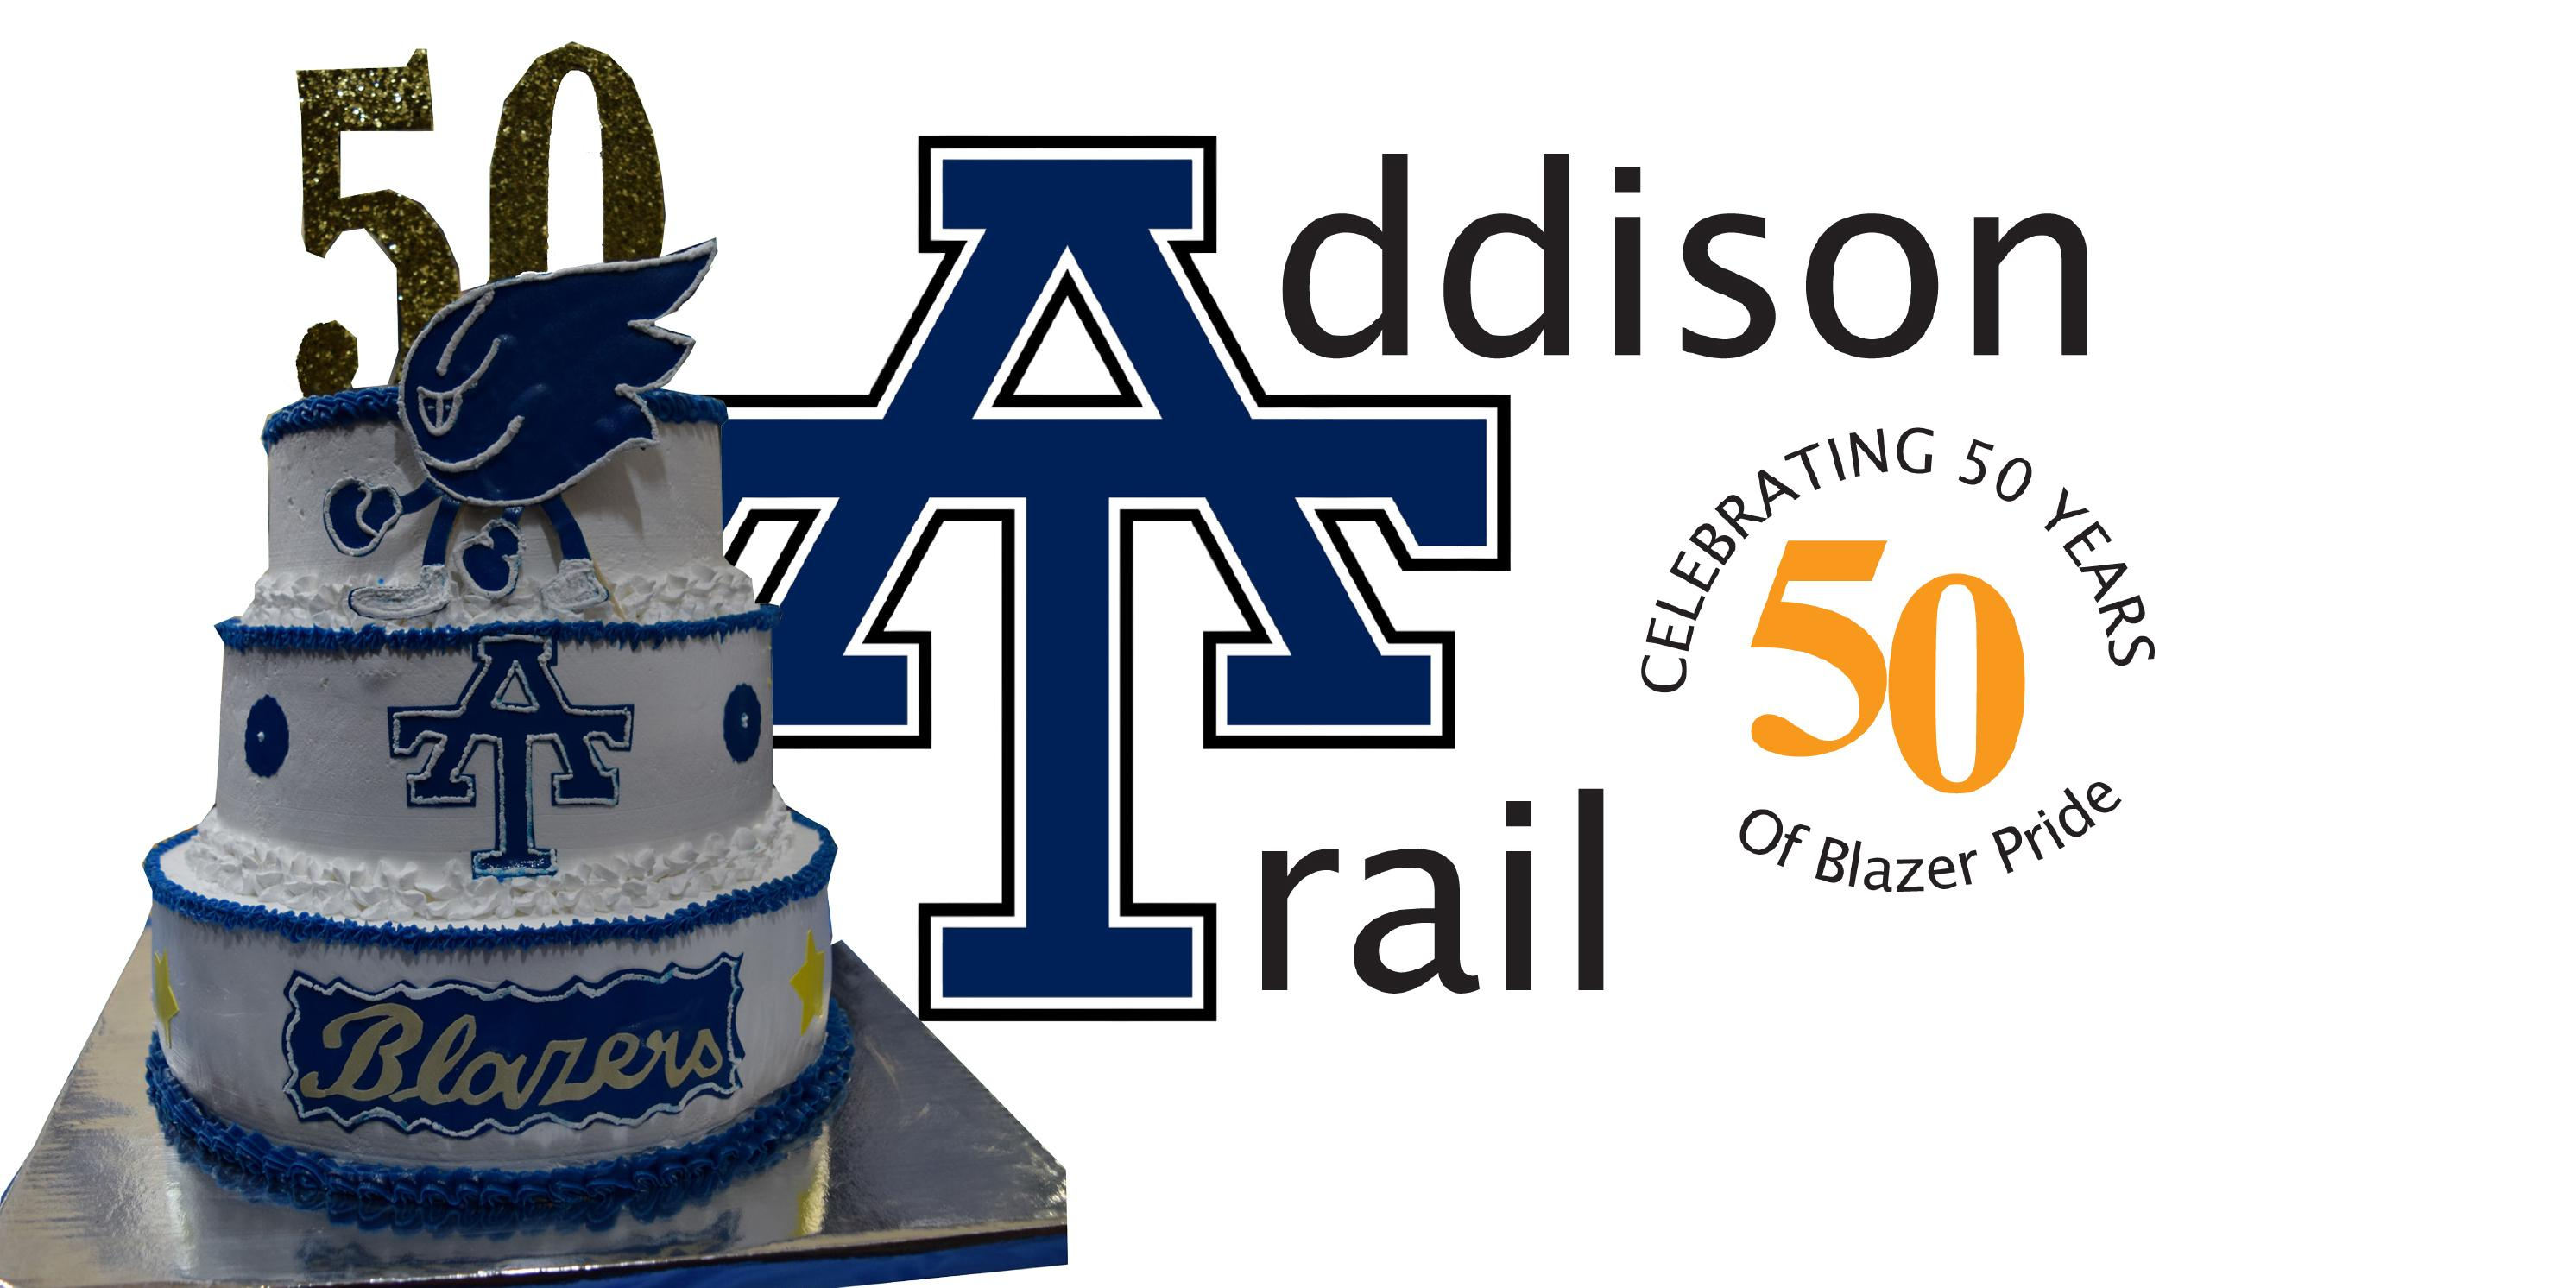 Addison Trail invites you to wish Bucky Blazer happy birthday